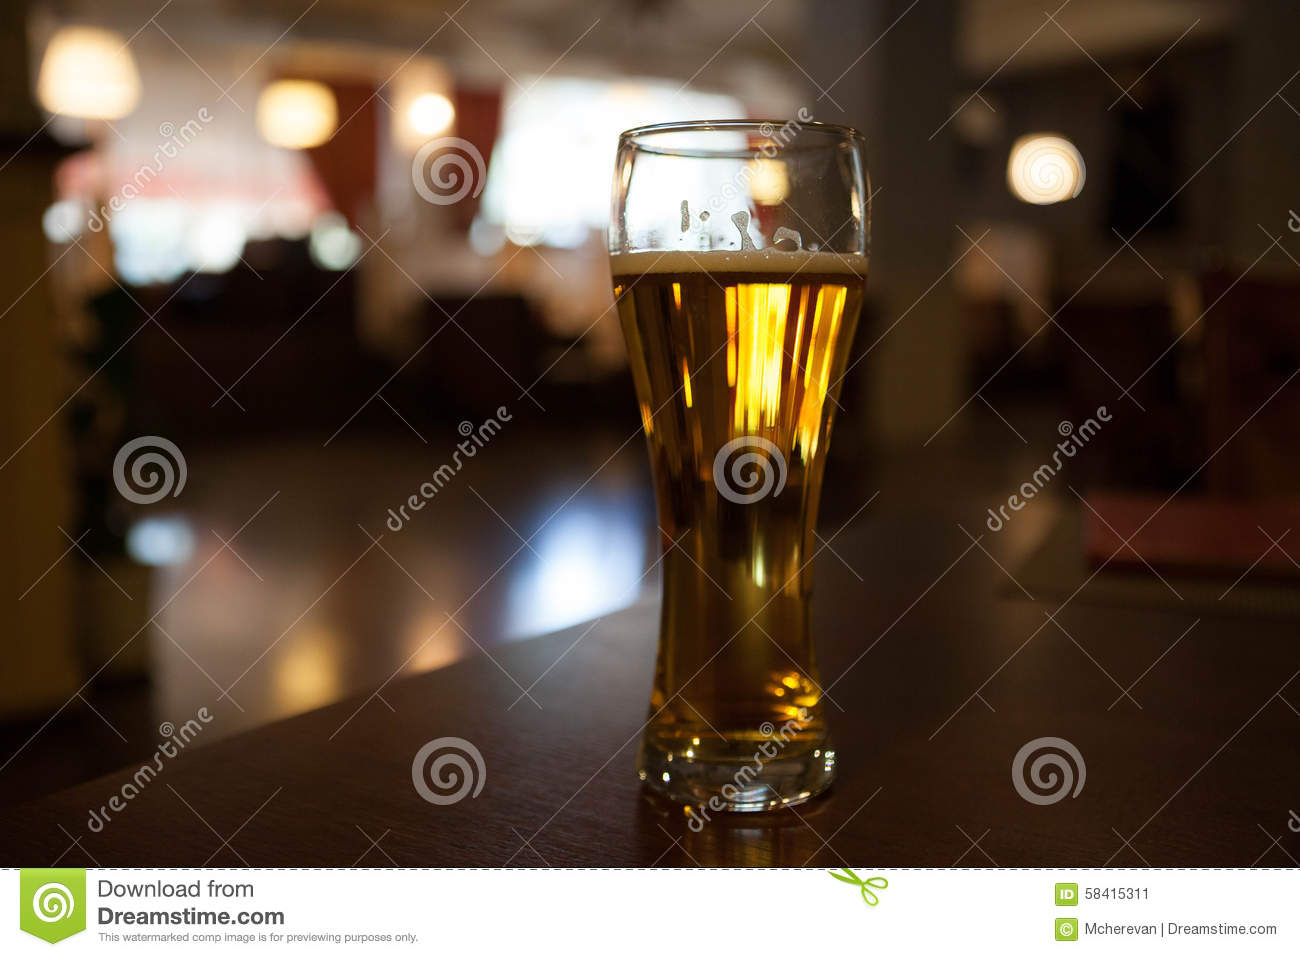 A glass of beer on the corner table in the restaurant